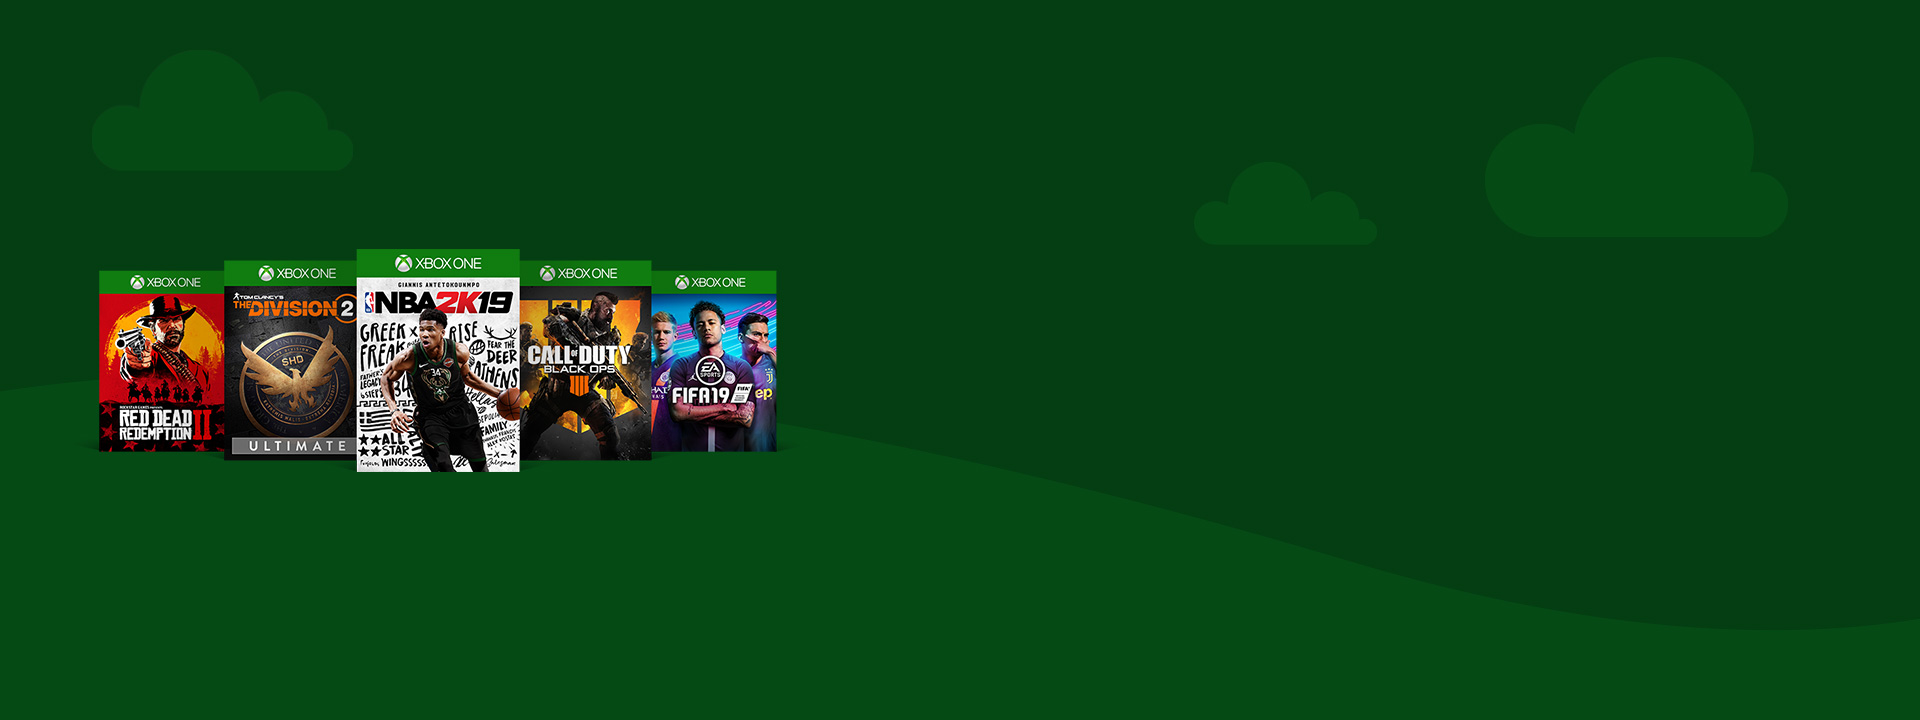 Box shots of Red Dead Redemption 2, The Division 2, NBA 2K19, Call of Duty: Black Ops 4, and Fifa 19 on a green spring-themed background featuring a handful of clouds